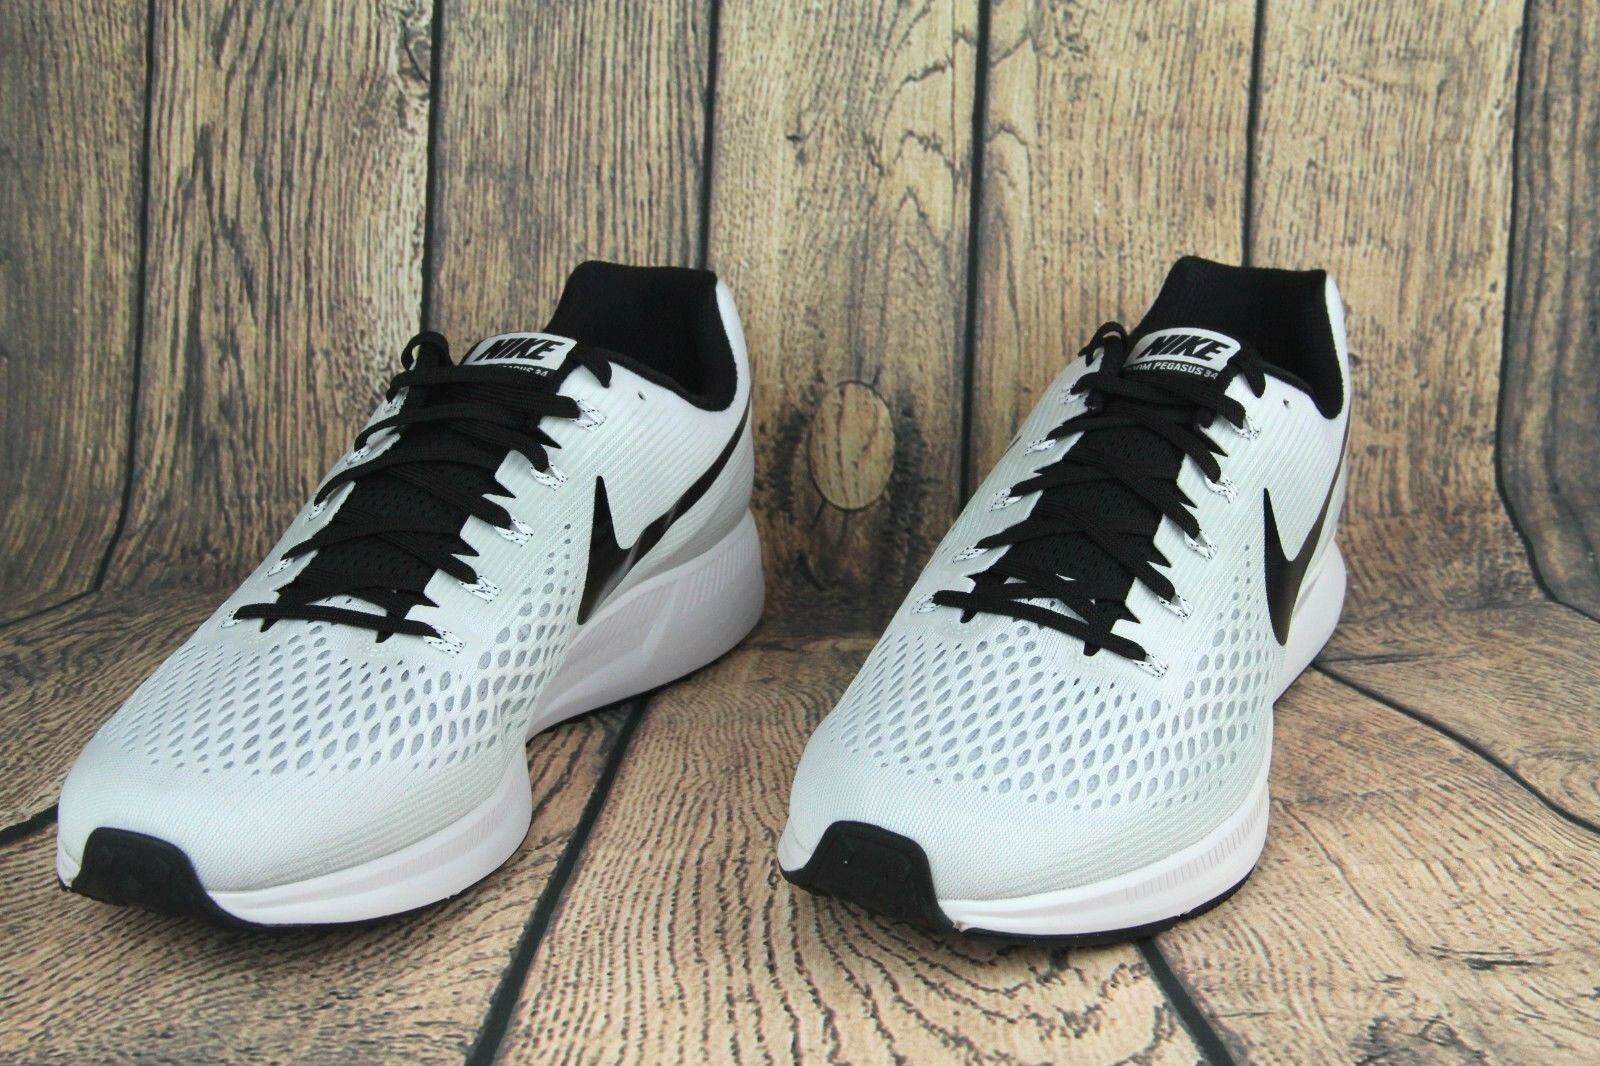 The latest discount shoes for men and women Nike Air Zoom Pegasus 34 TB Running Shoes White Black 887009-100 Mens Price reduction